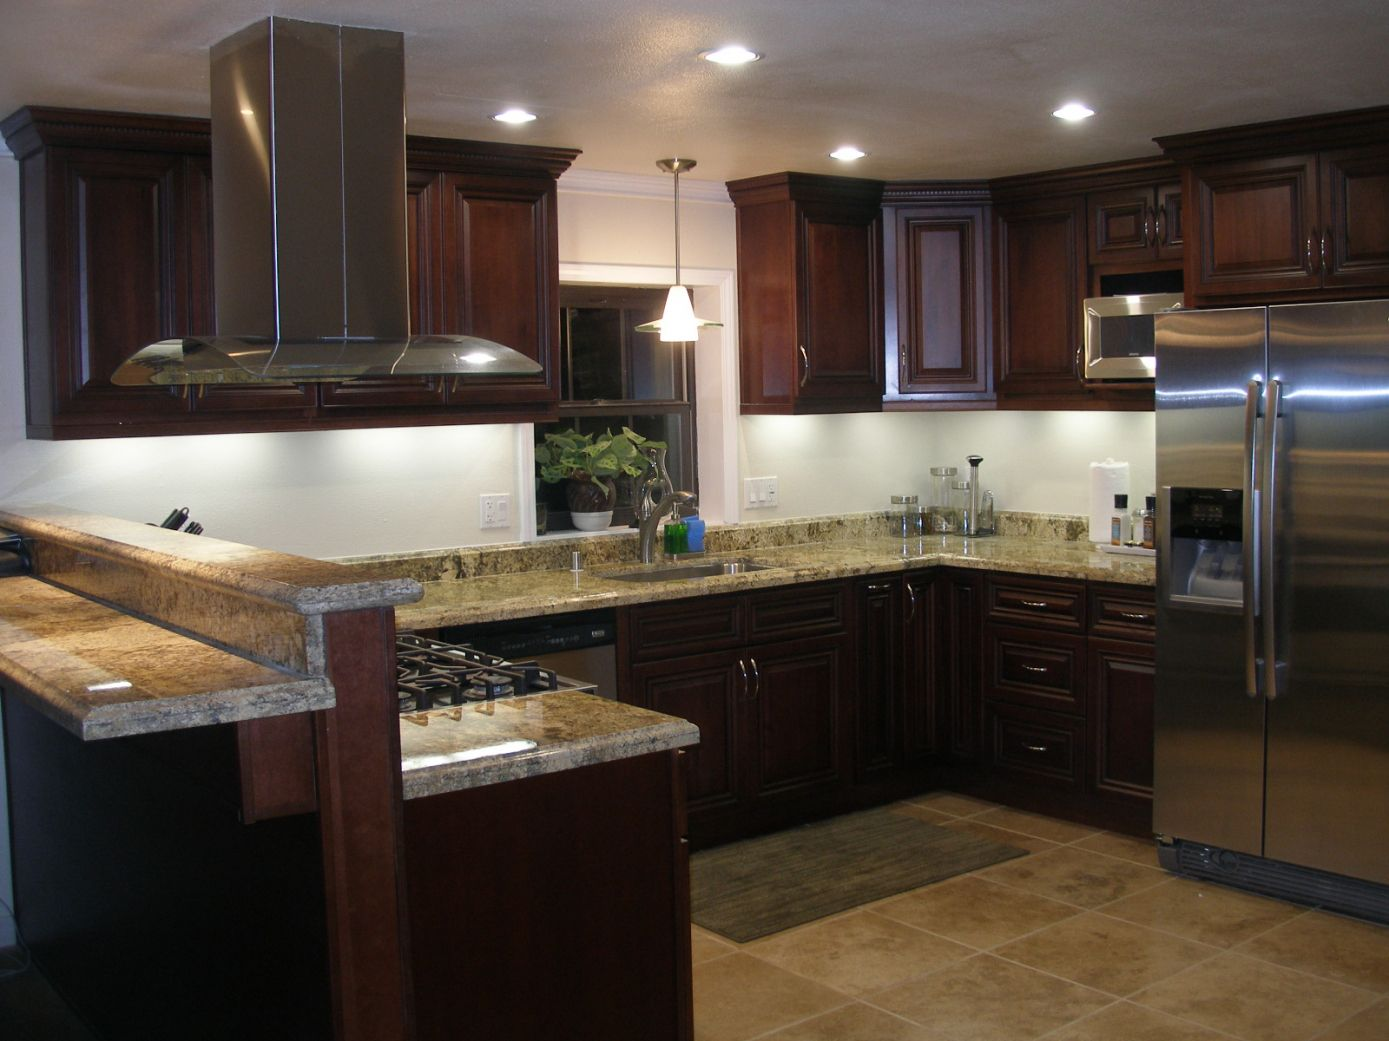 How Much Are Kitchen Remodels Interior Paint Colors Check - How much are kitchen remodels